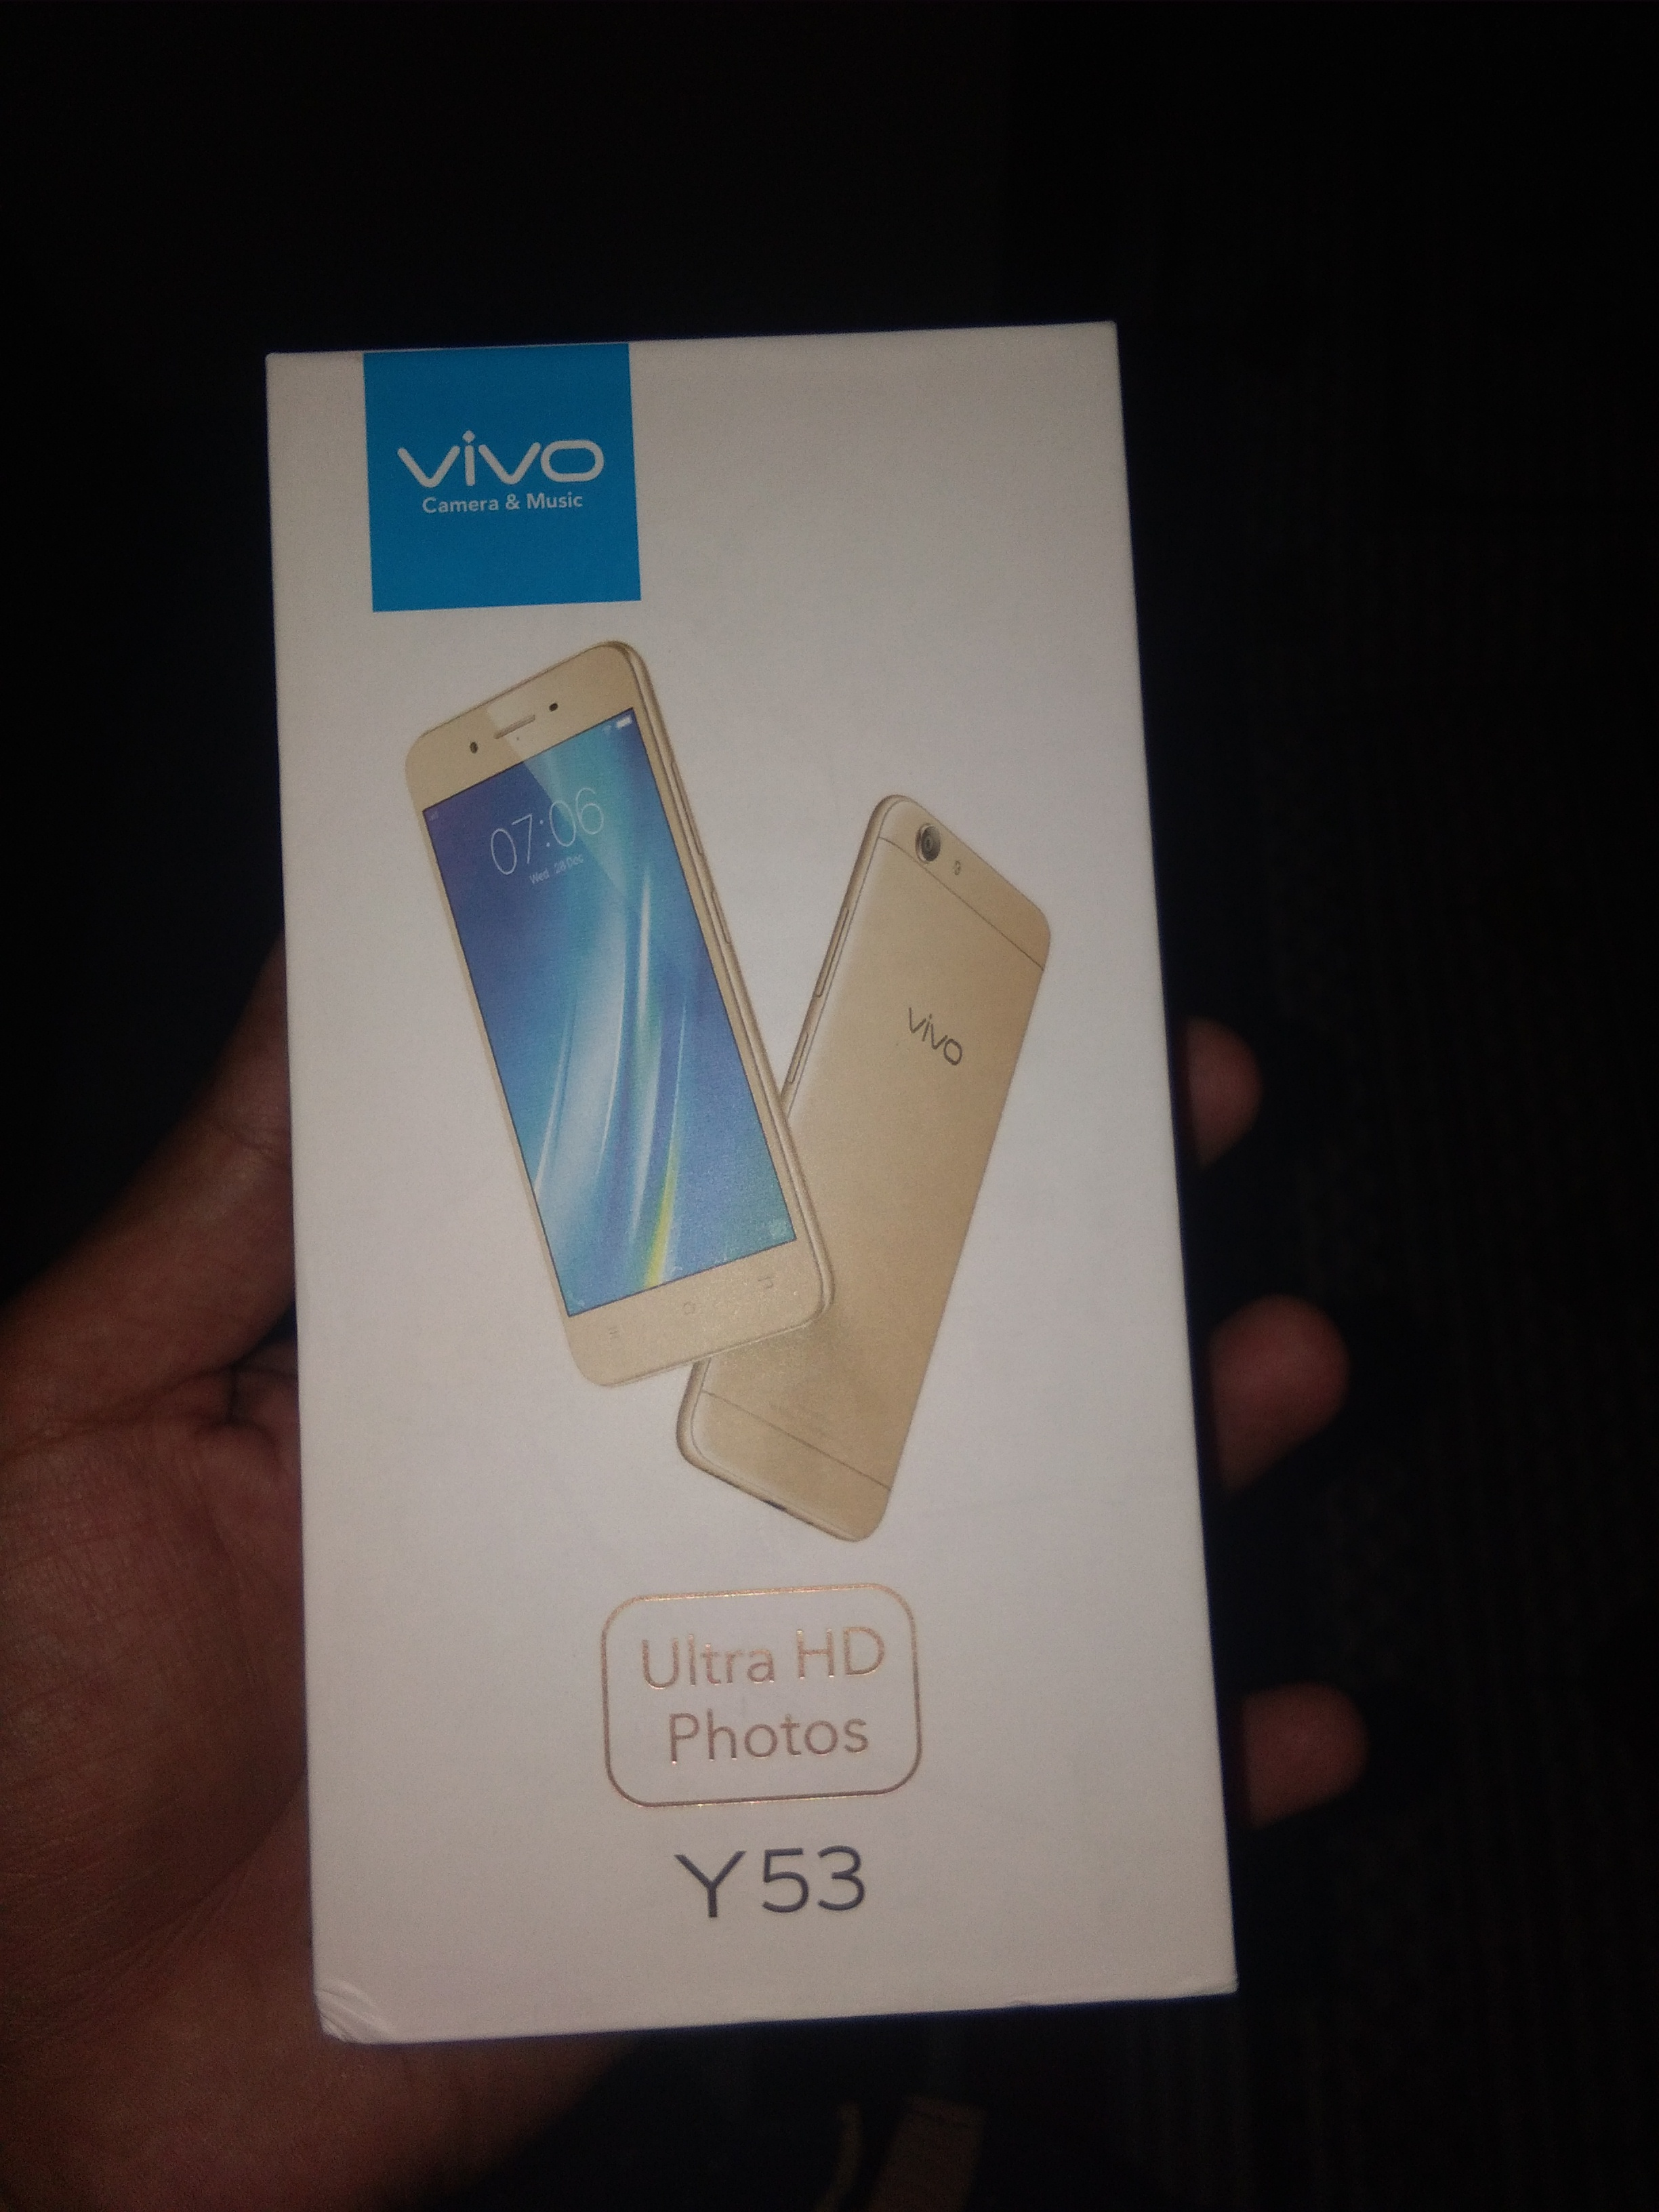 Nice and lite weight smartphone - VIVO Y53 User Review - MouthShut com